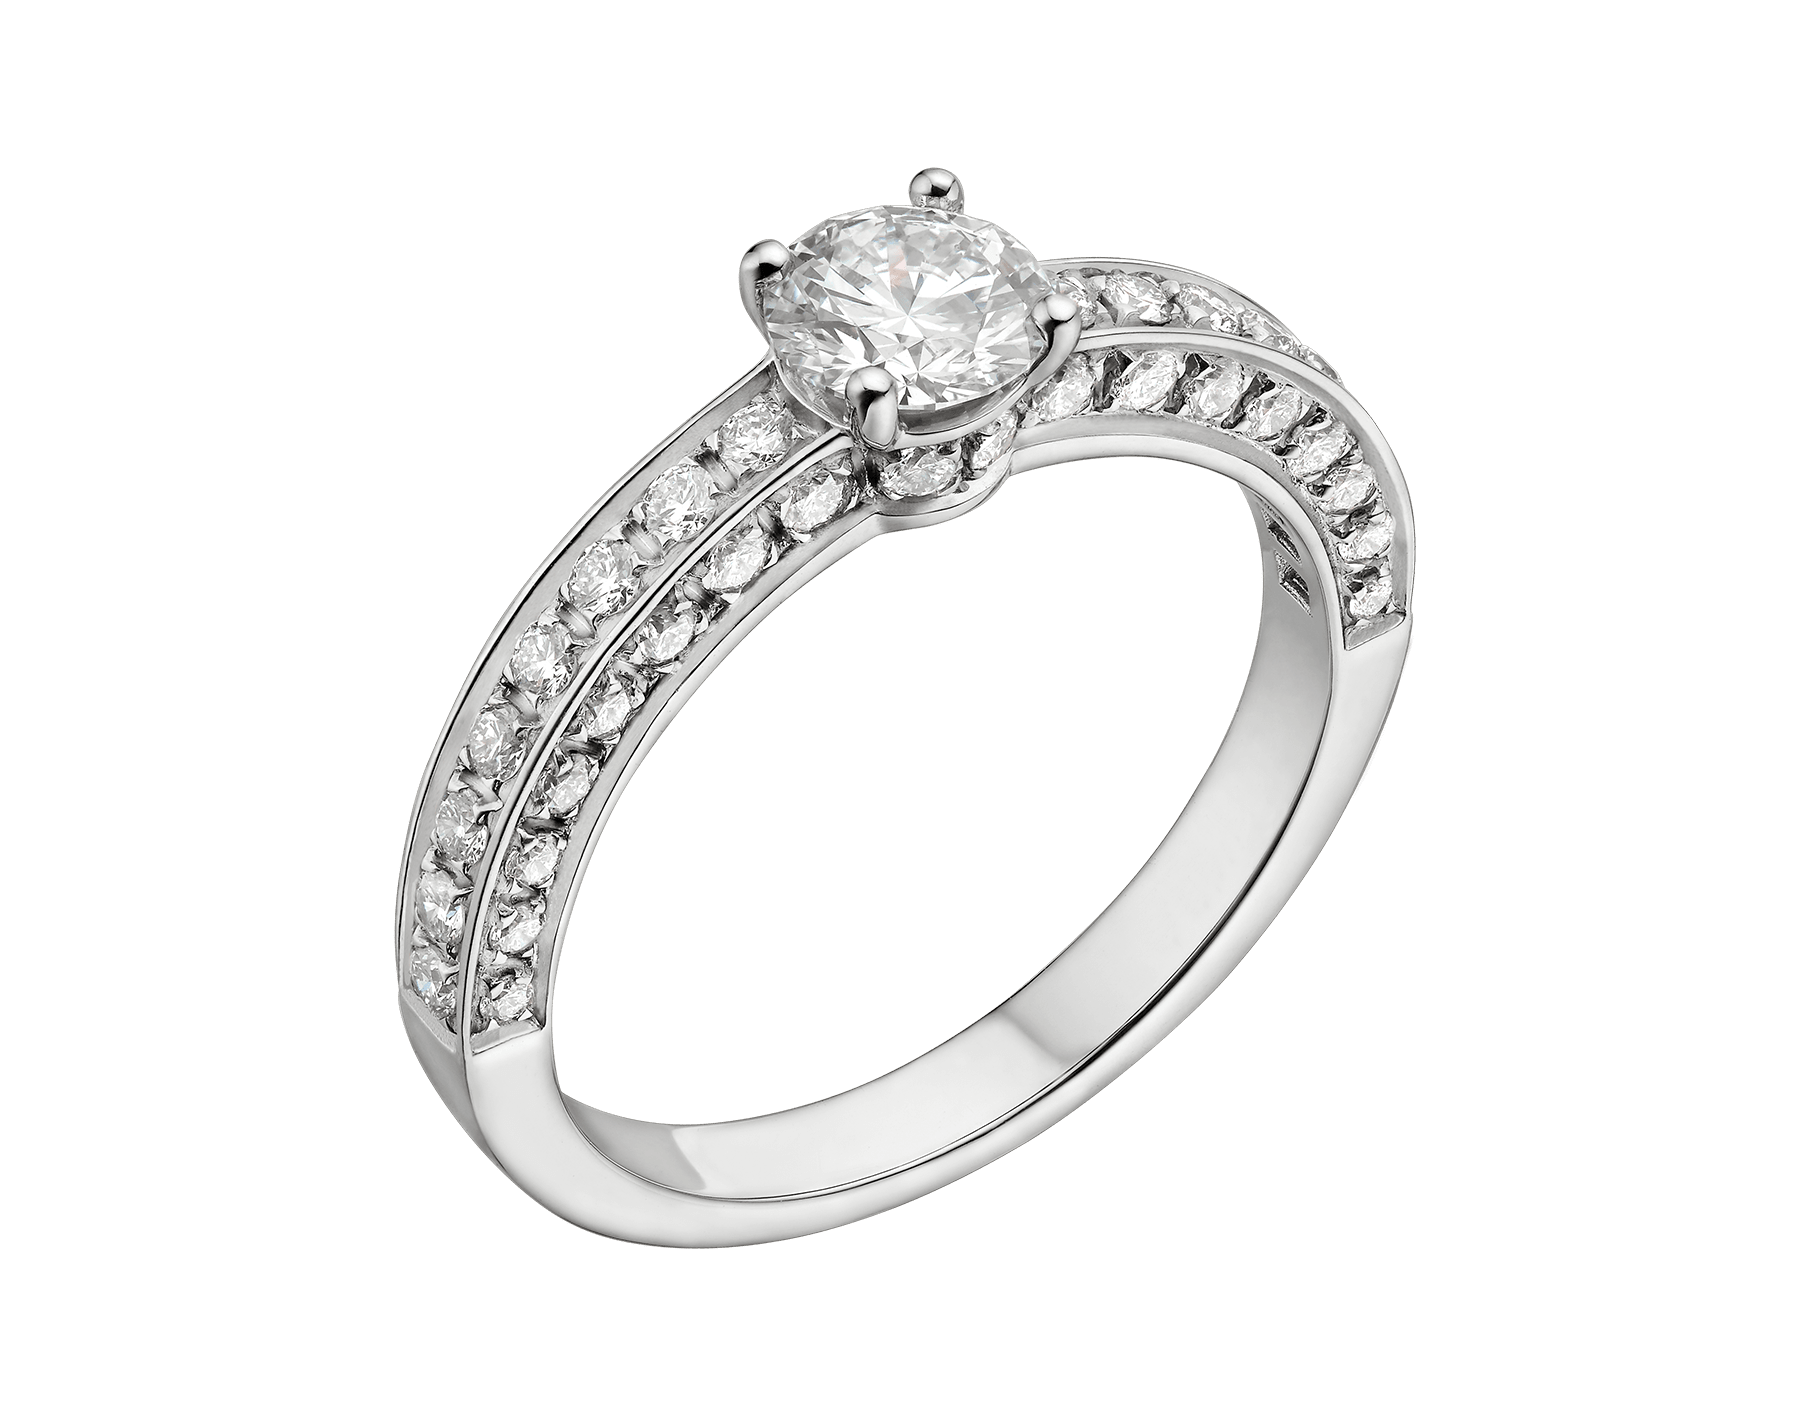 Dedicata a Venezia: 1503 solitaire ring in platinum with a round brilliant-cut diamond and pavé diamonds. Available from 0.30 ct. Named after the year in which the first engagement ring was offered in Venice. 343579 image 1